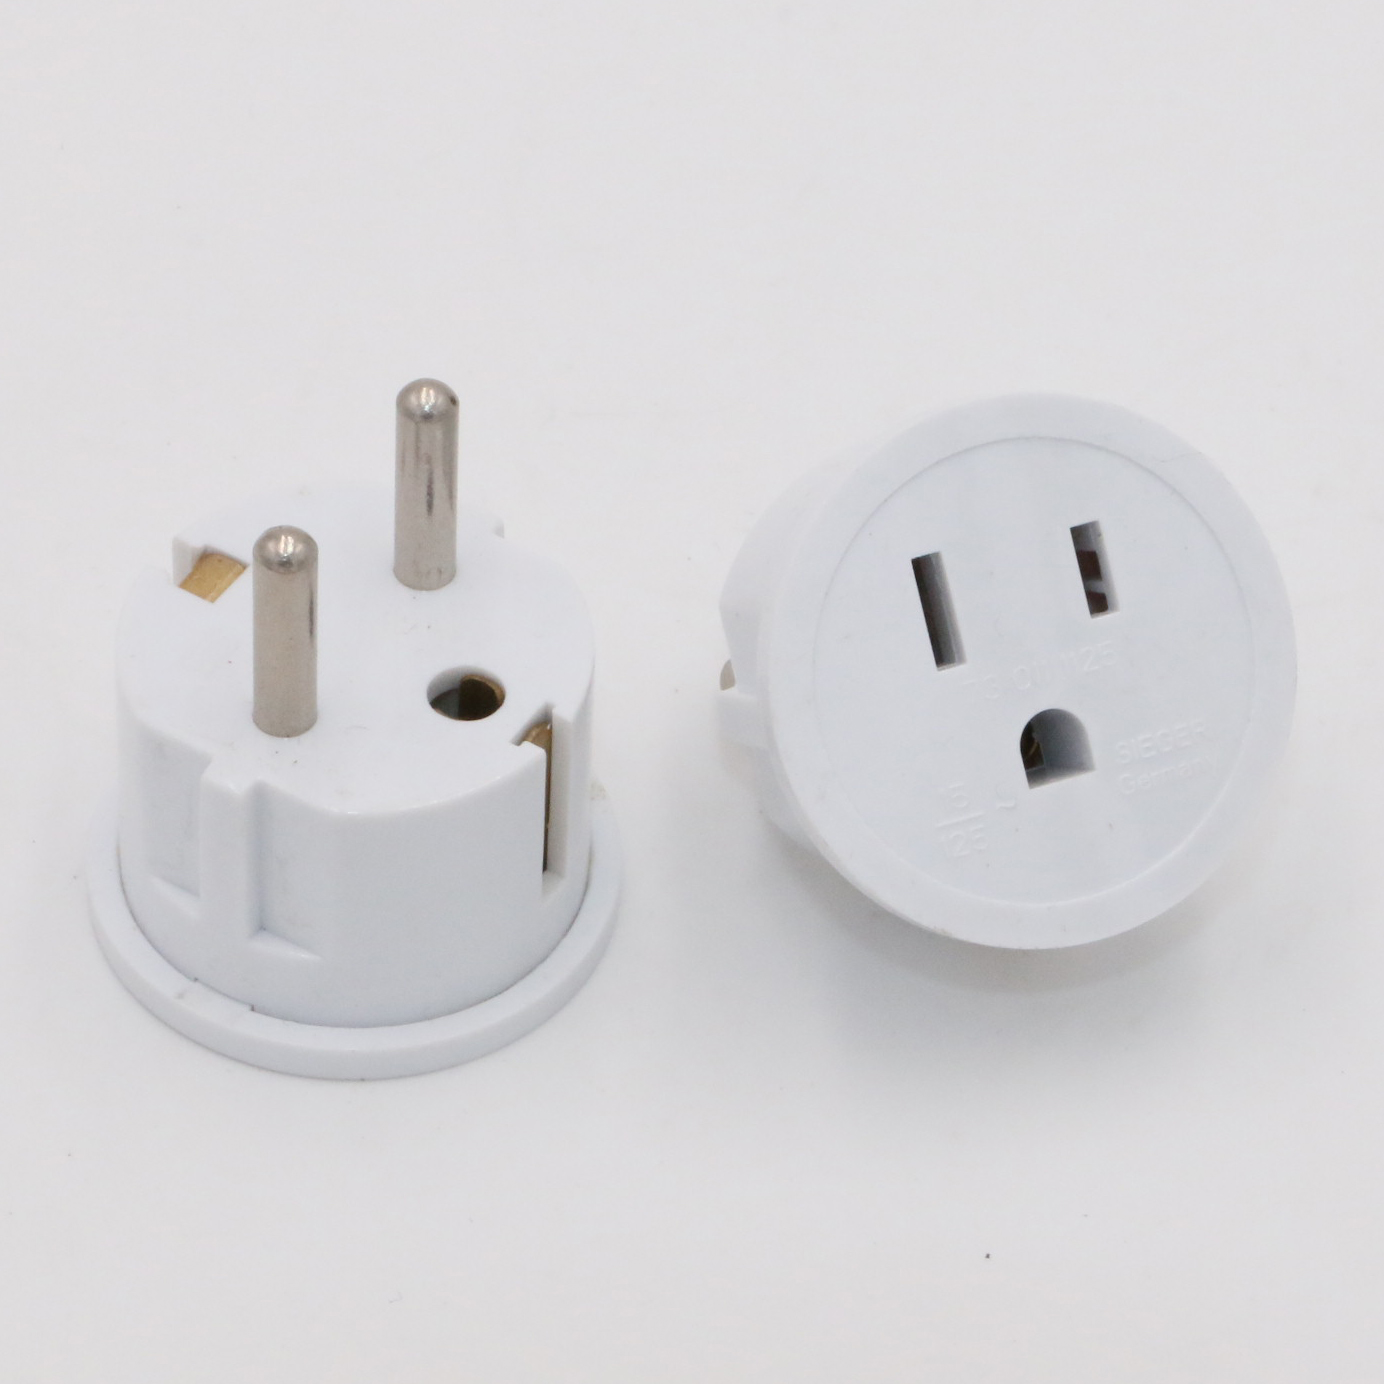 Grounded Shucko Plug Adapter For USA/Asia To Europe/Germany